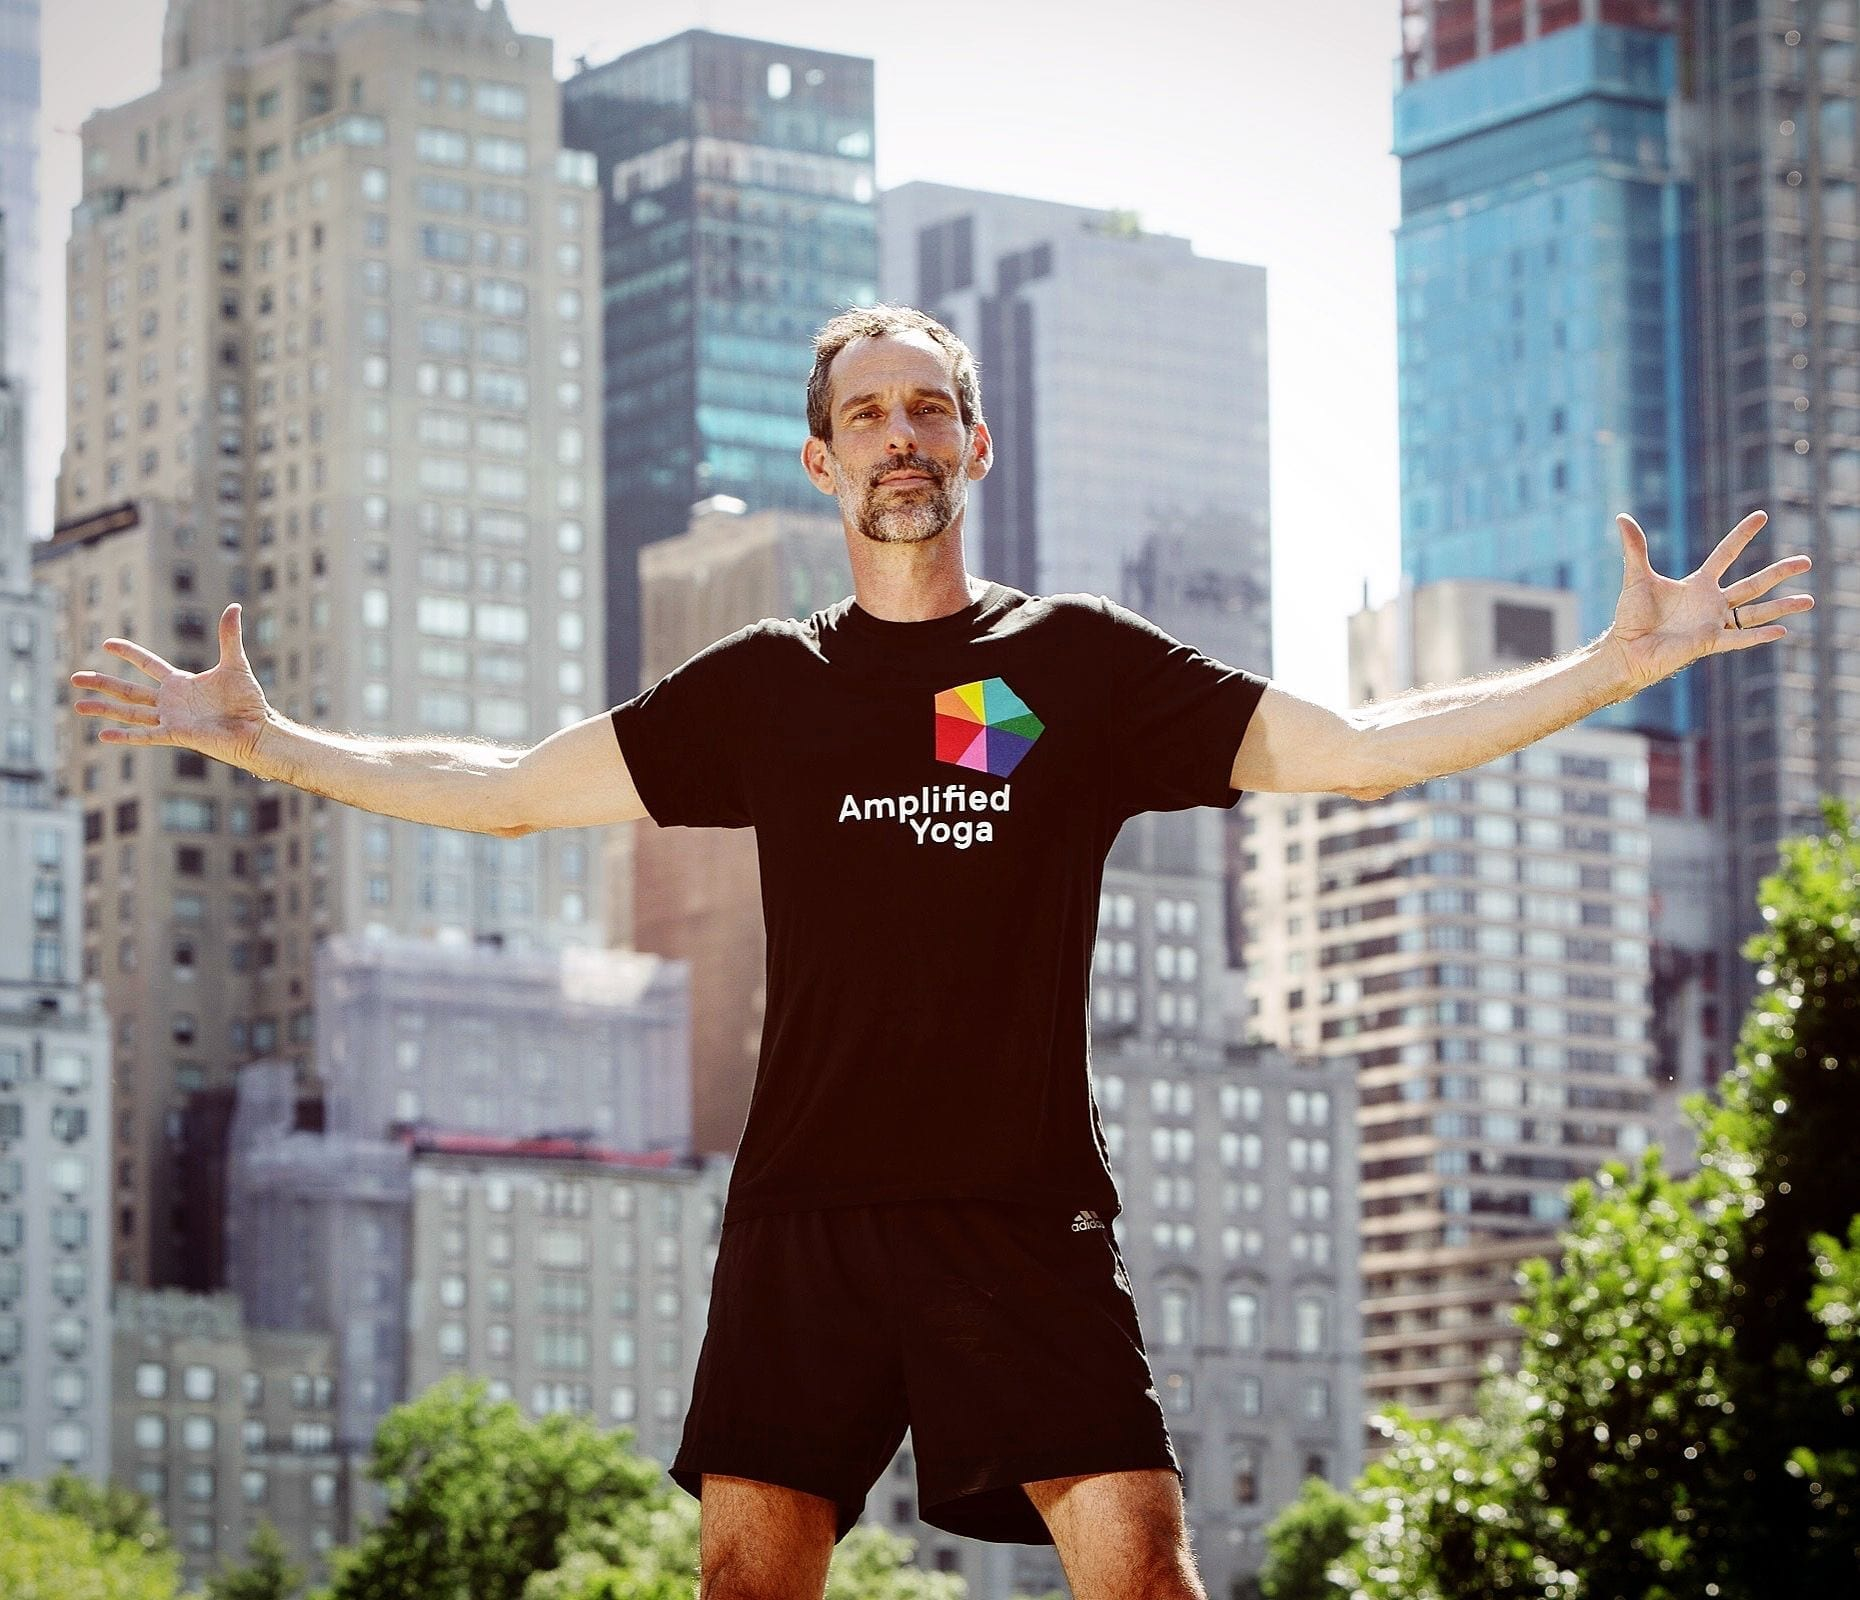 Q&A with Donovan McGrath from Amplified Yoga